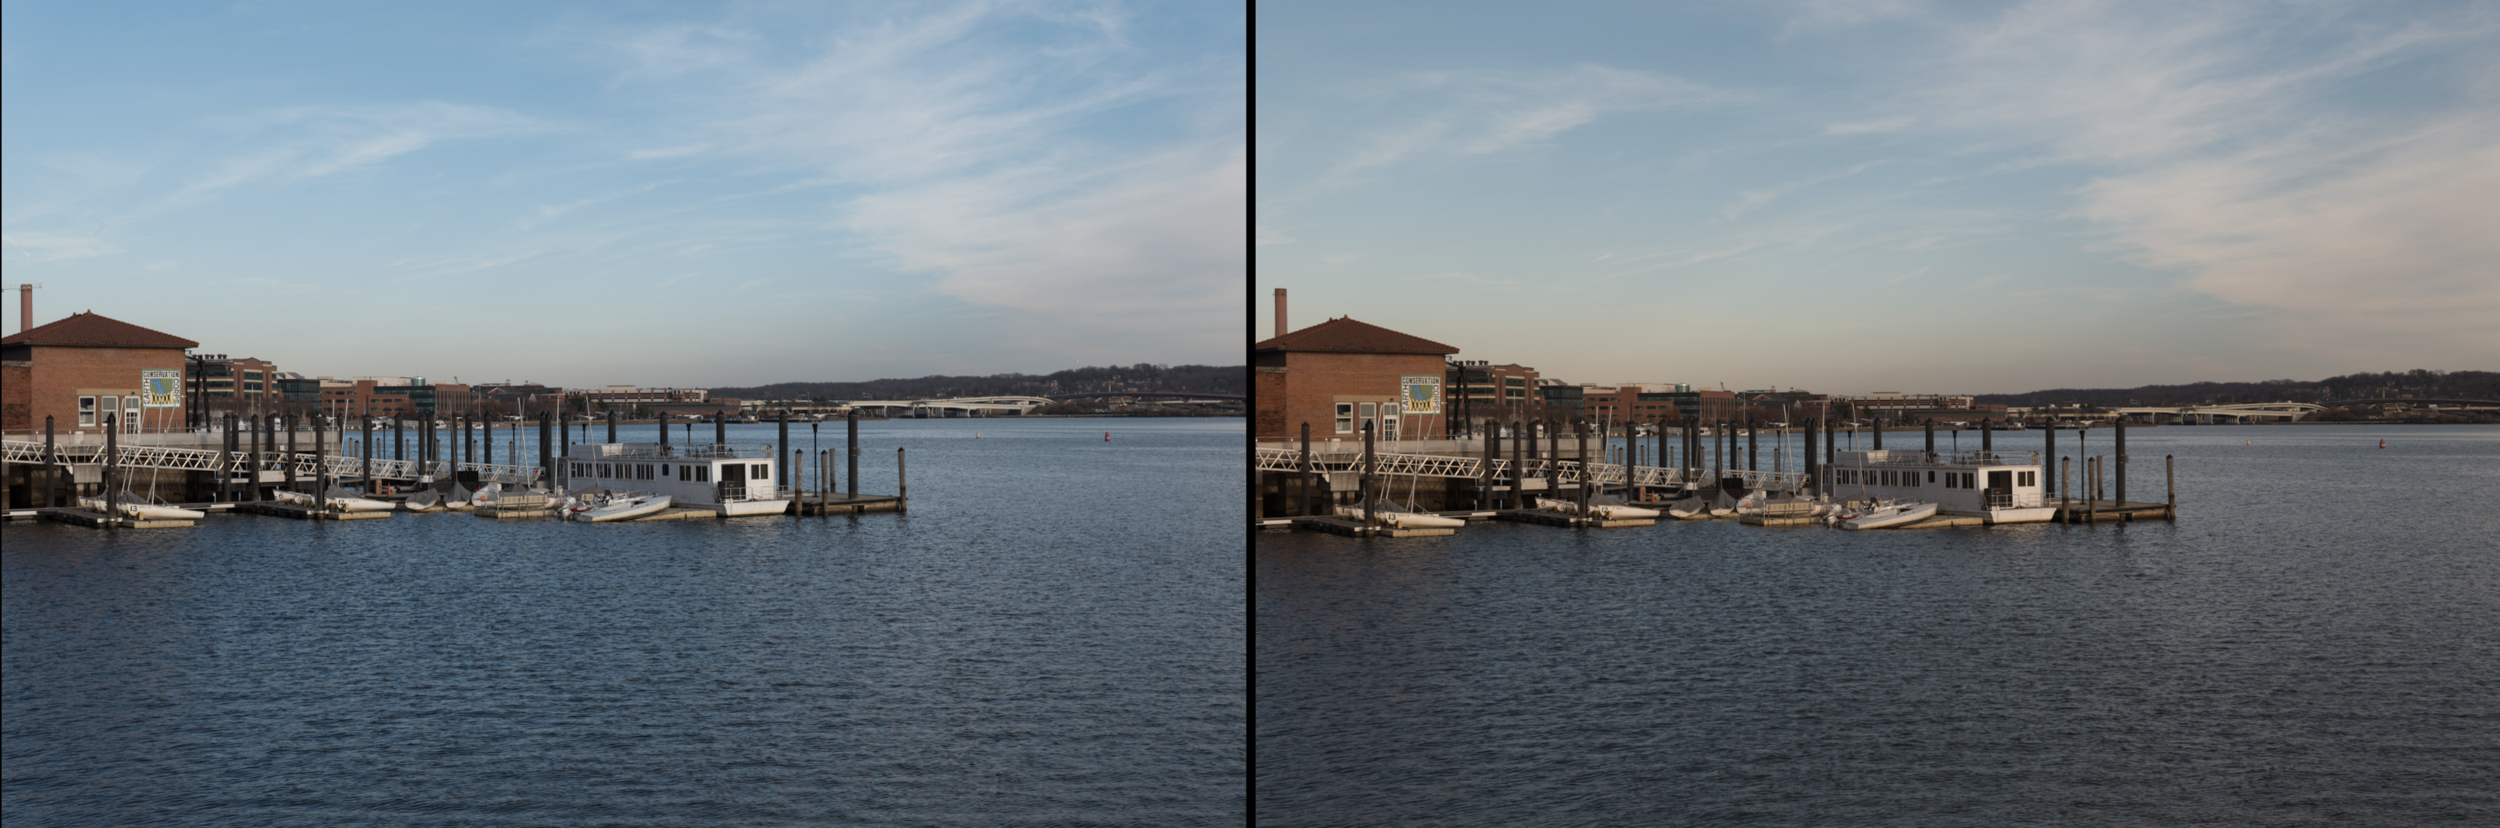 Left:  Leica 24-90mm lens;   Right: Nikon 24-70mm lens Both images taken with the Leica SL at 50mm, f/11